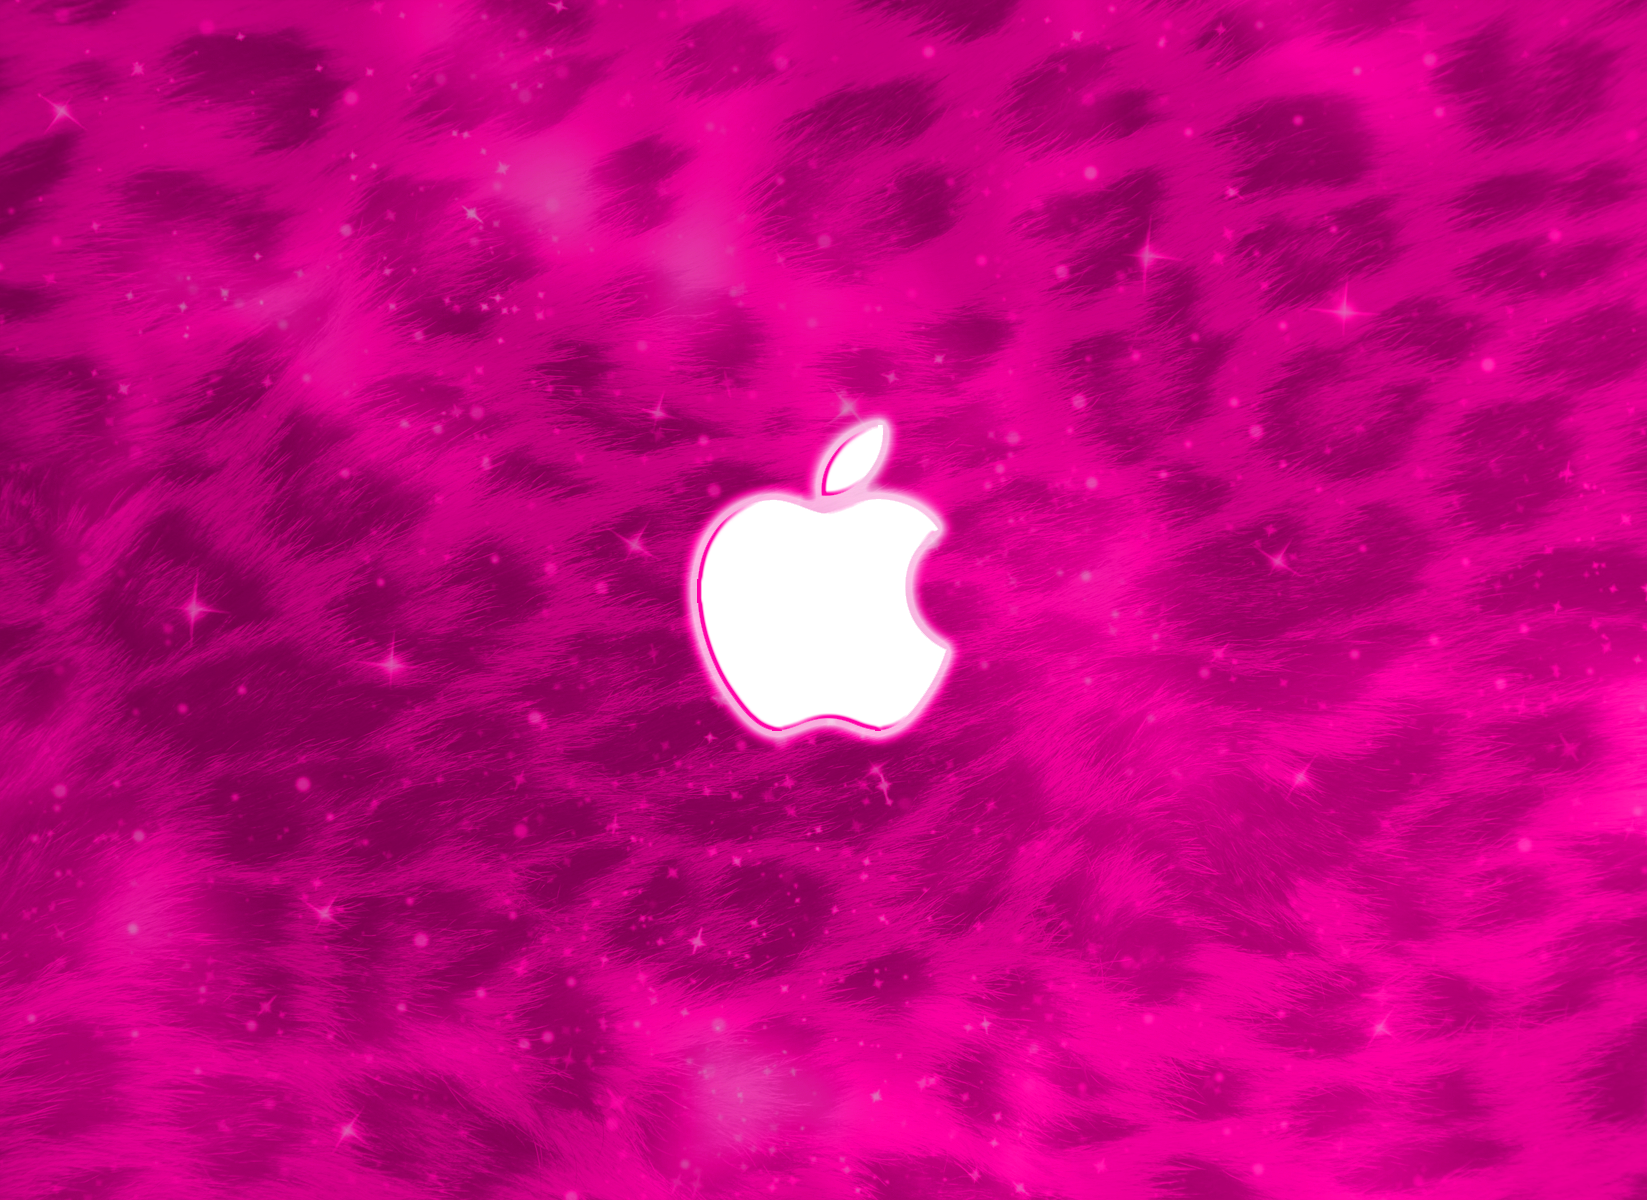 amazing apple logo wallpaper - bing images | apples in pink and red